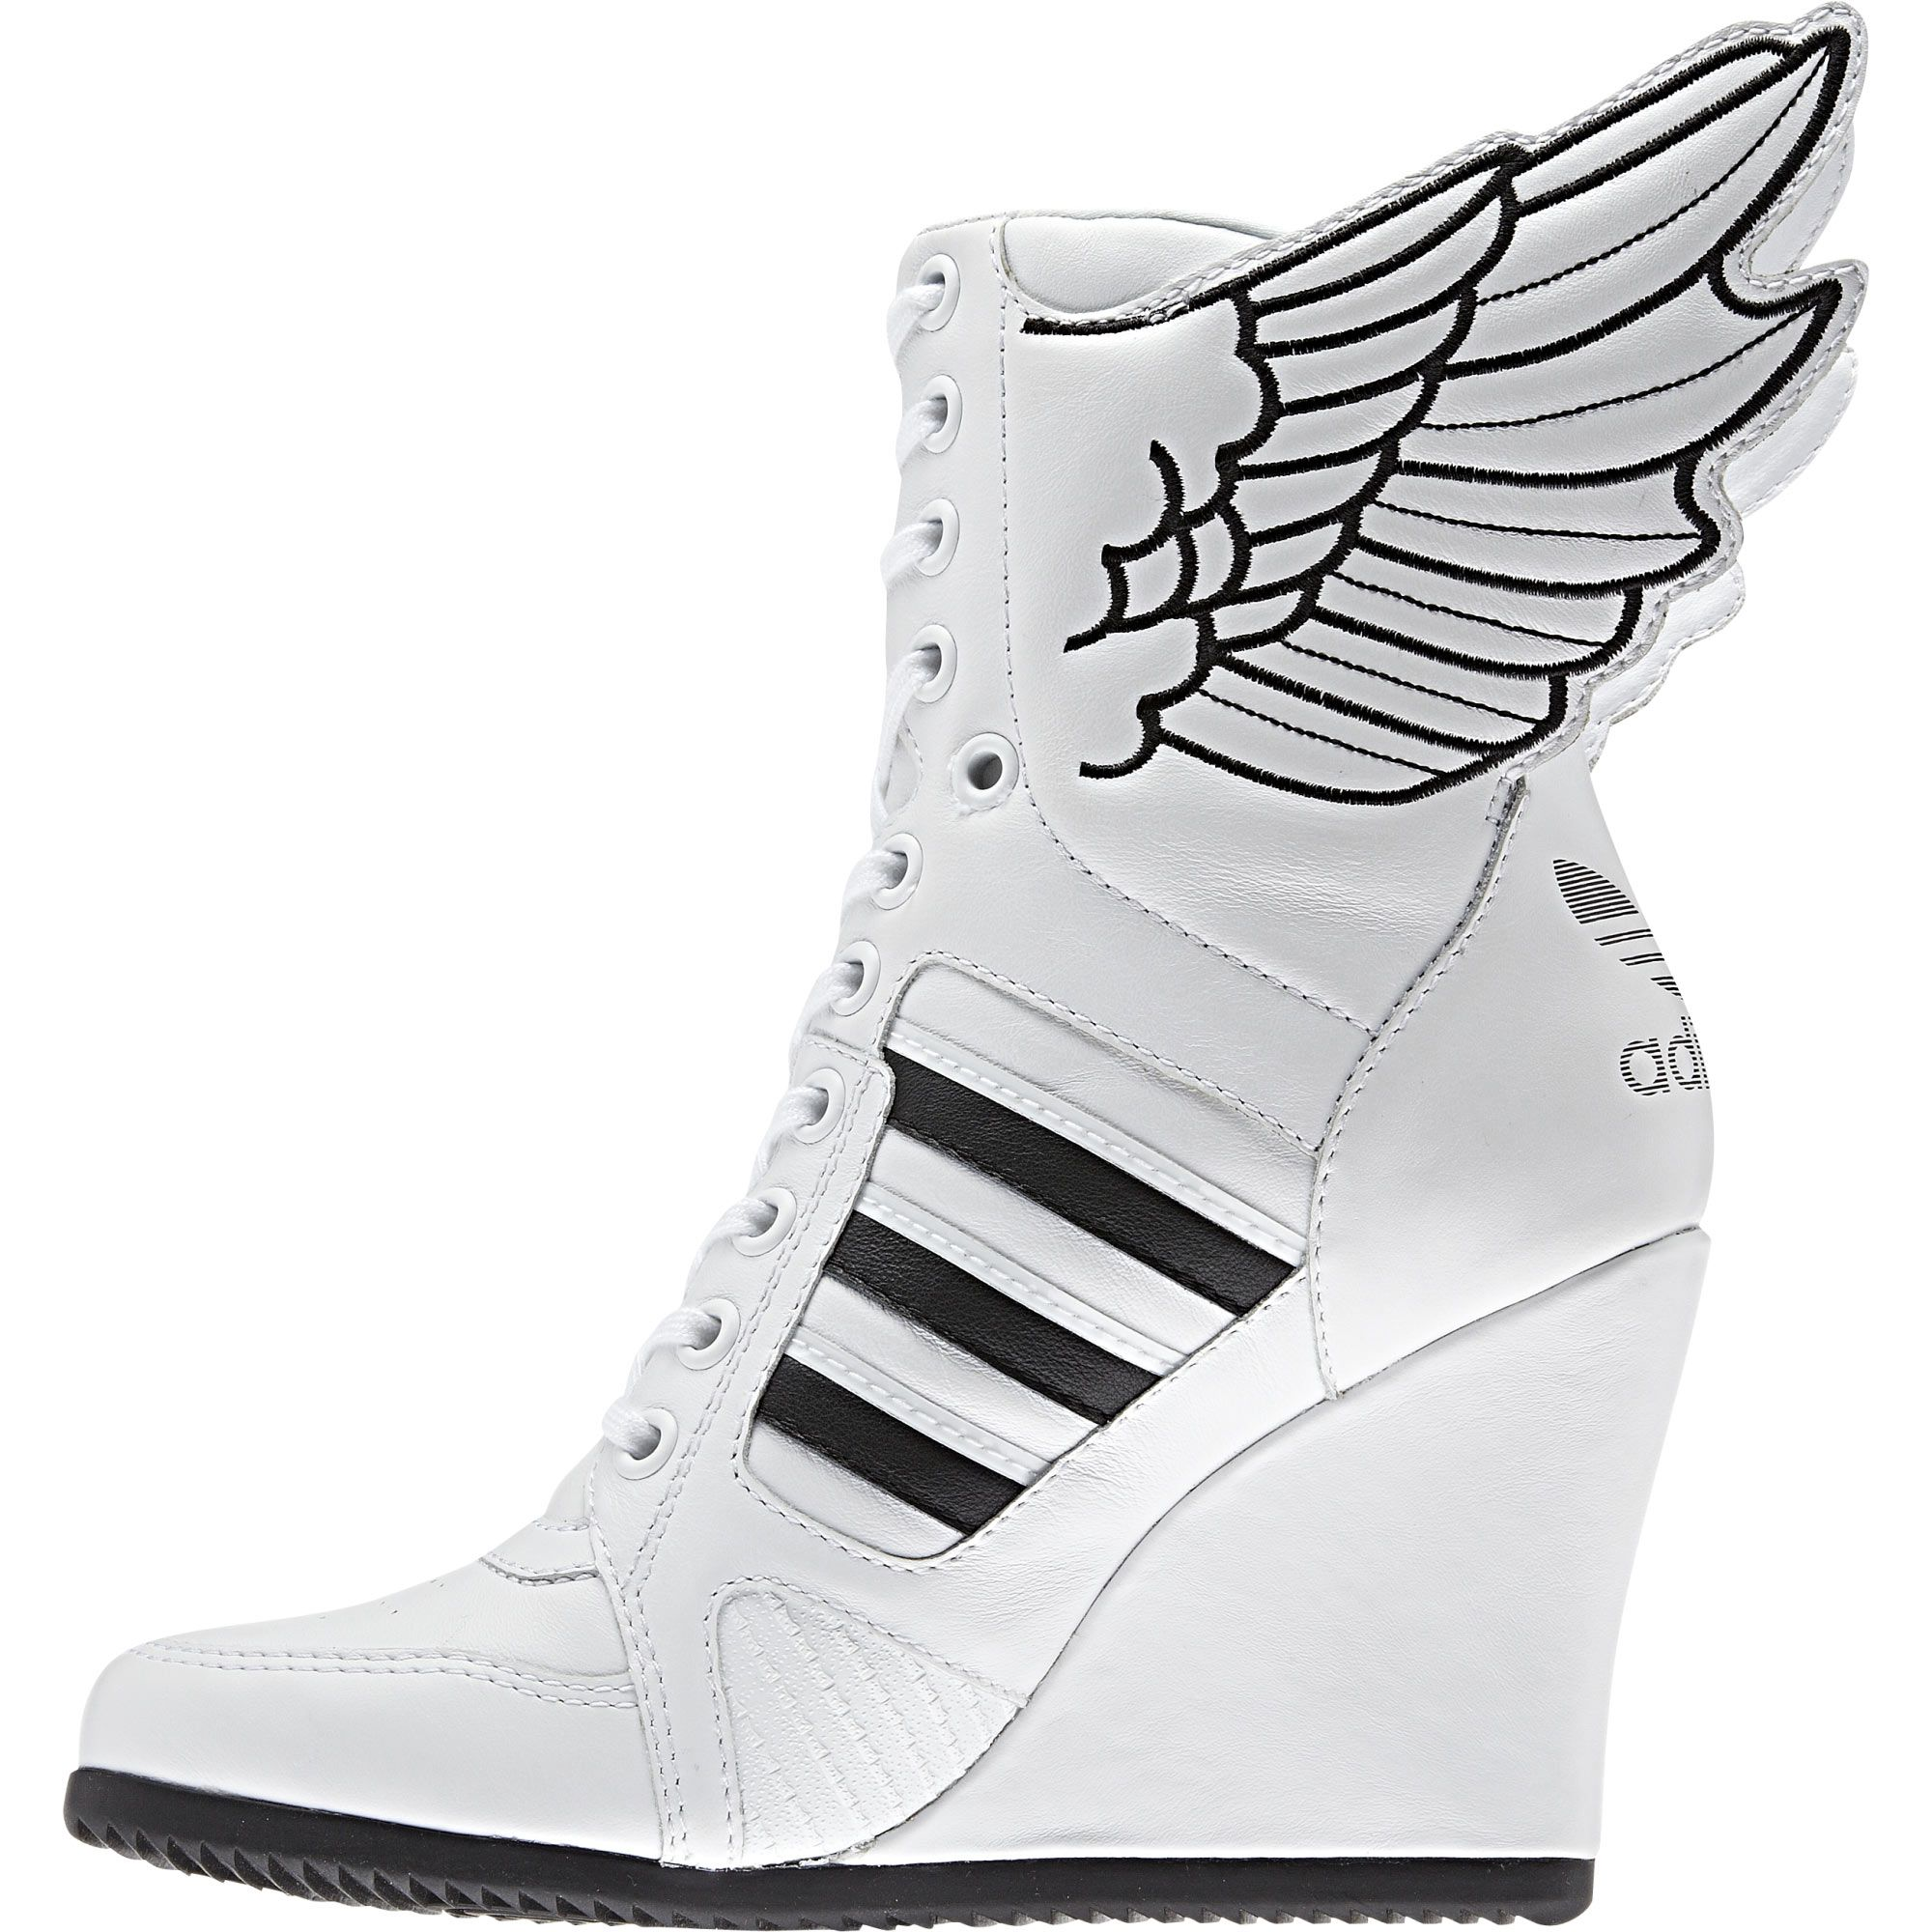 timeless design 1d6a1 34a46 jeremy scott adidas wedges